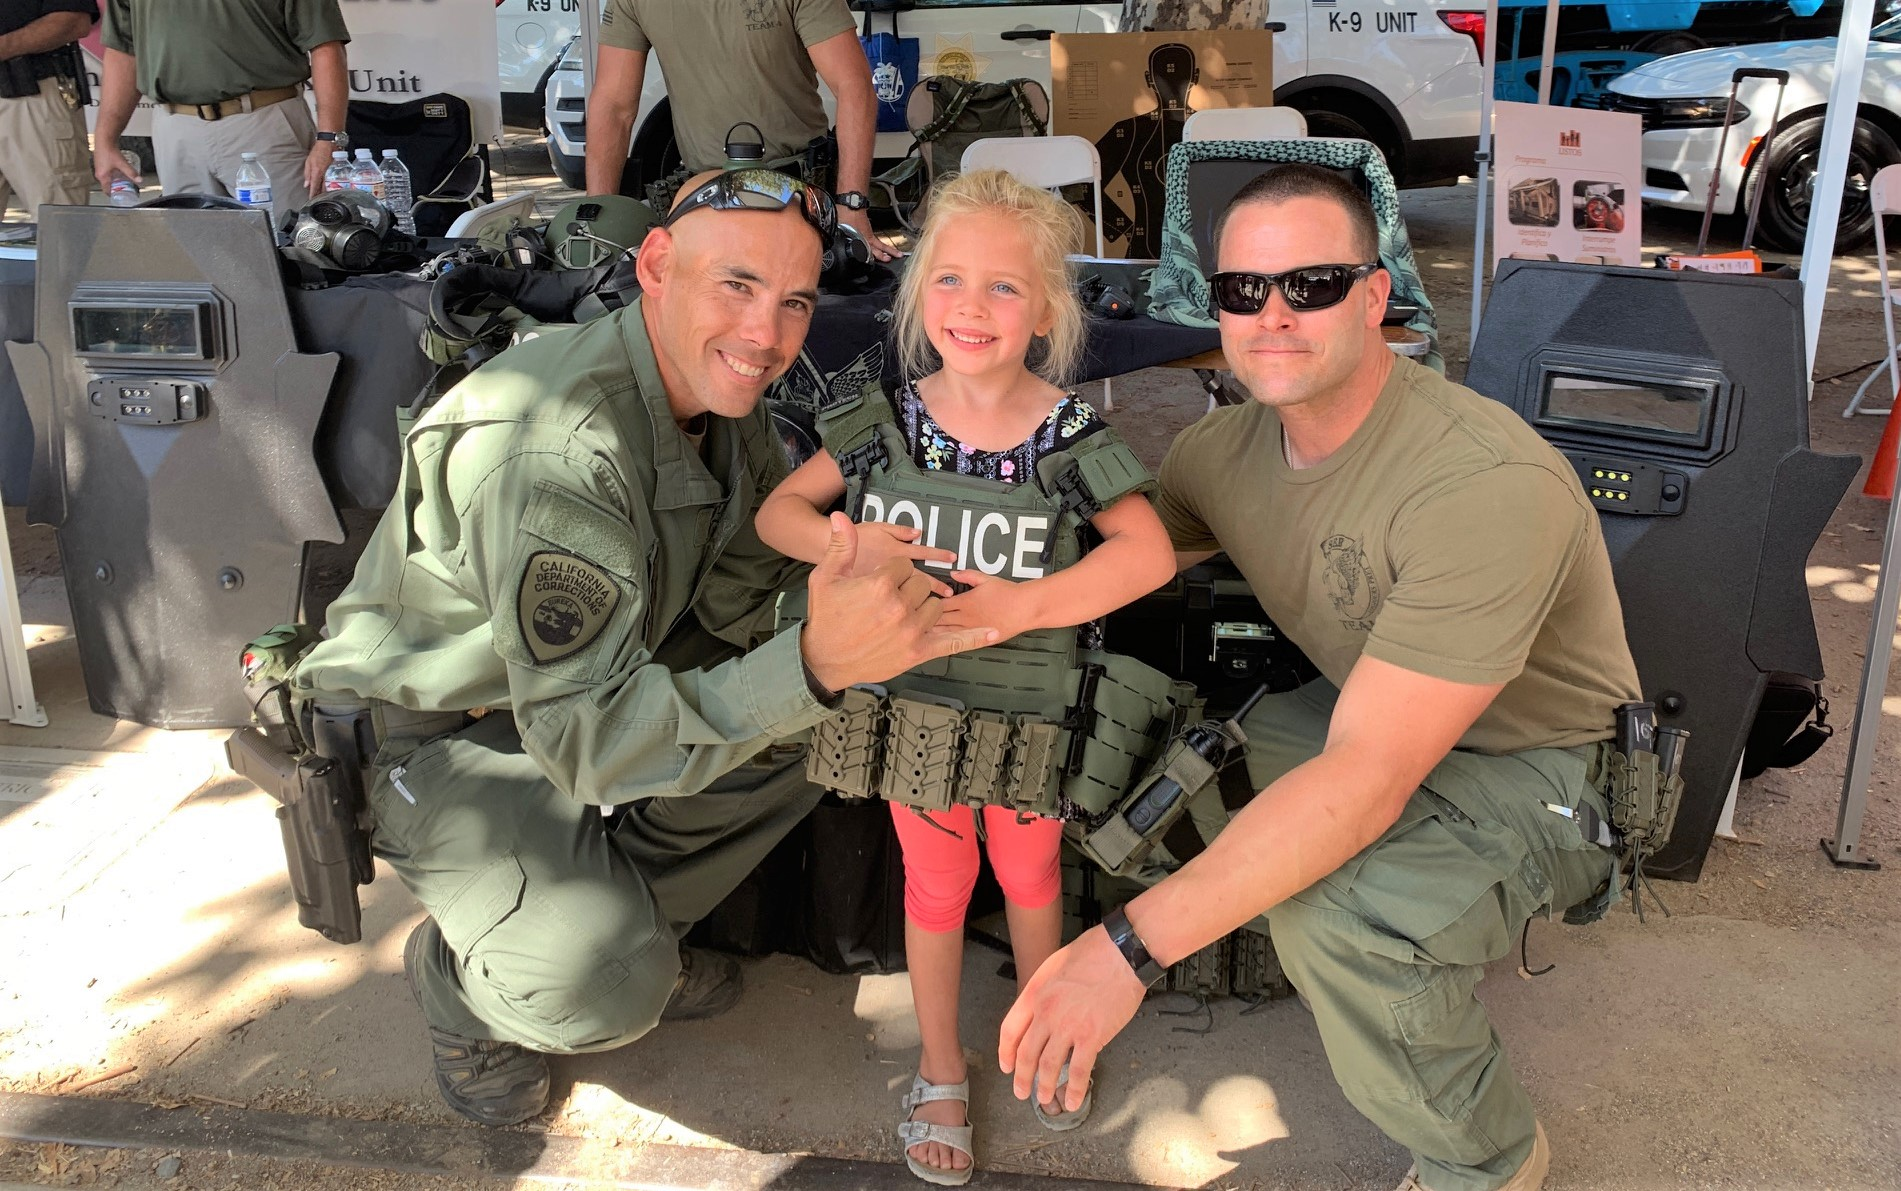 Two men in uniform and a young girl wearing some tactical gear.